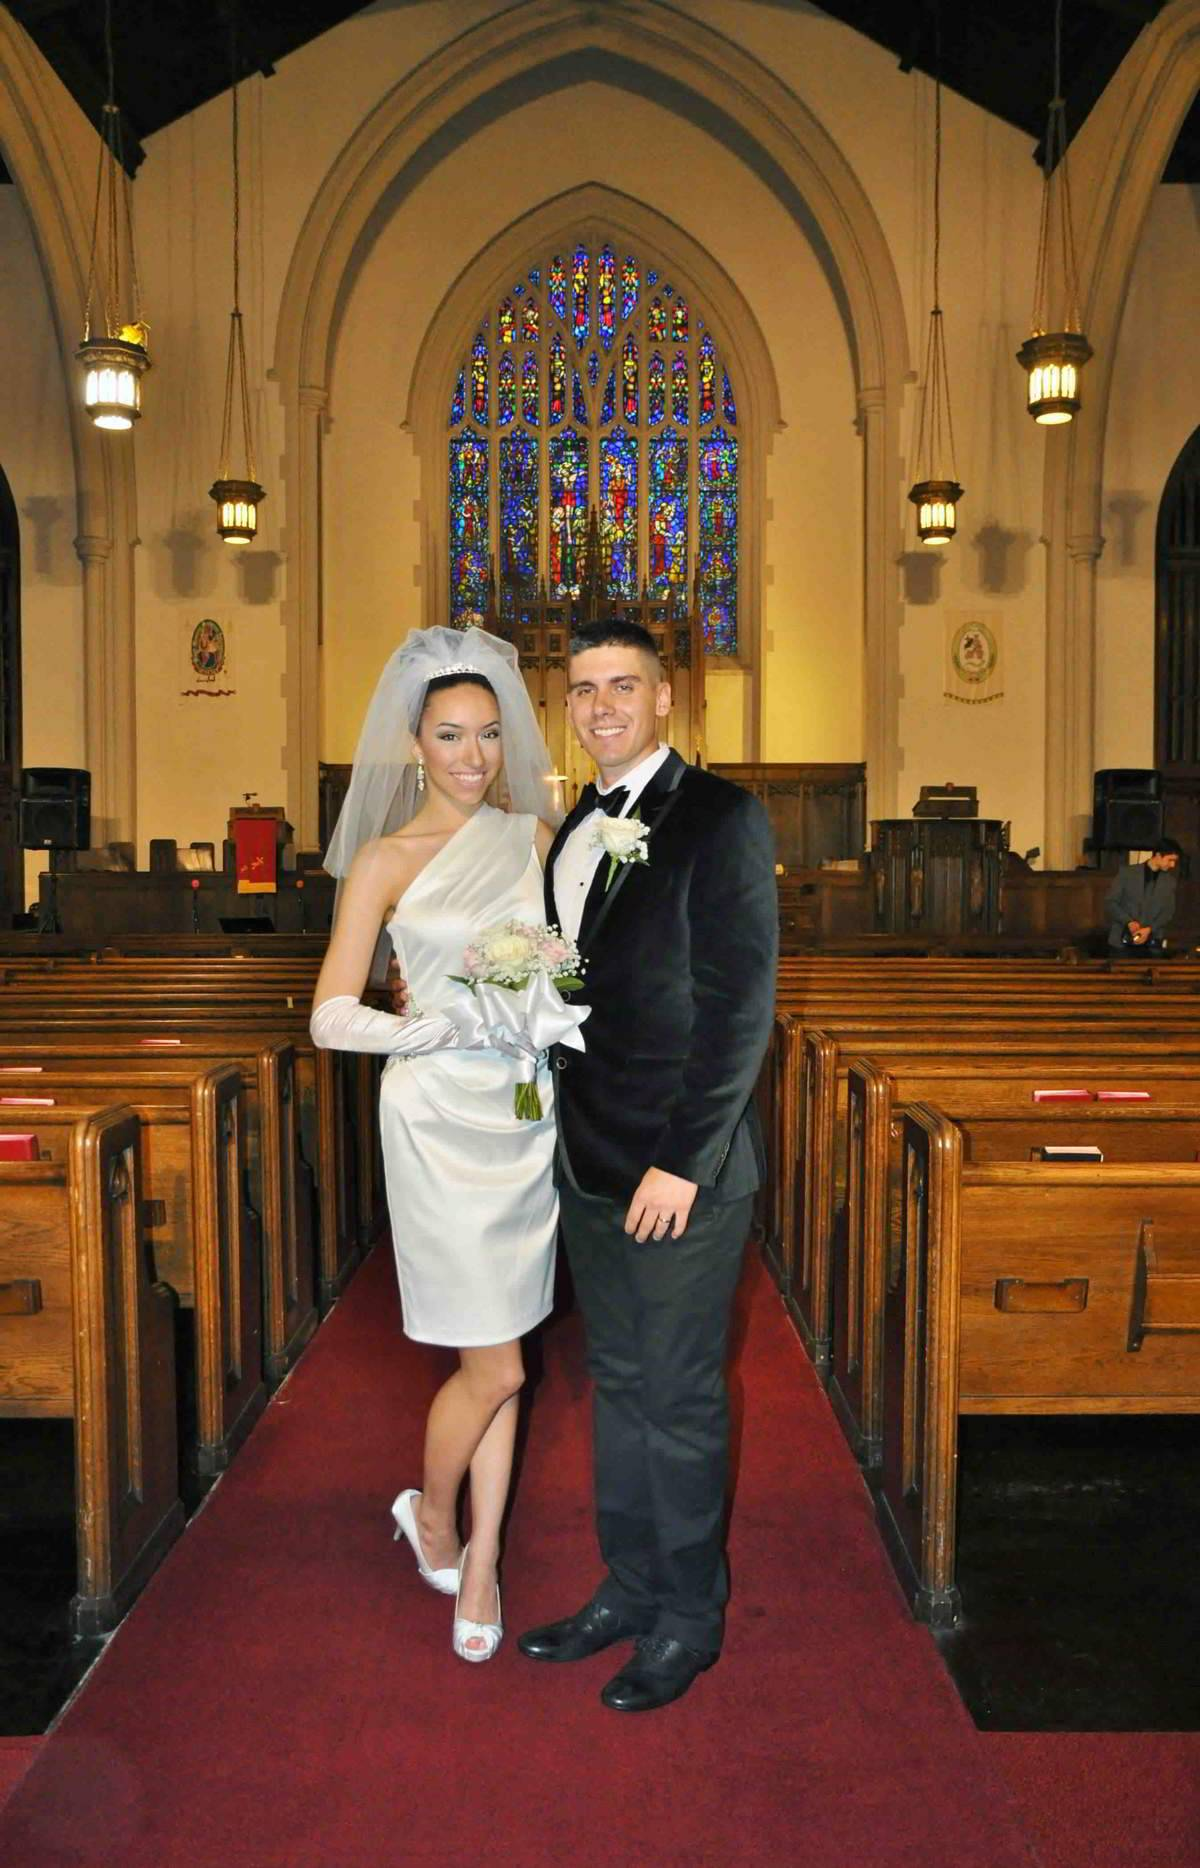 The Cathedral Can Seat Up To 300 Guests And Is A Warm Inviting Location For Wedding Of Any Size From Smallest Largest Group